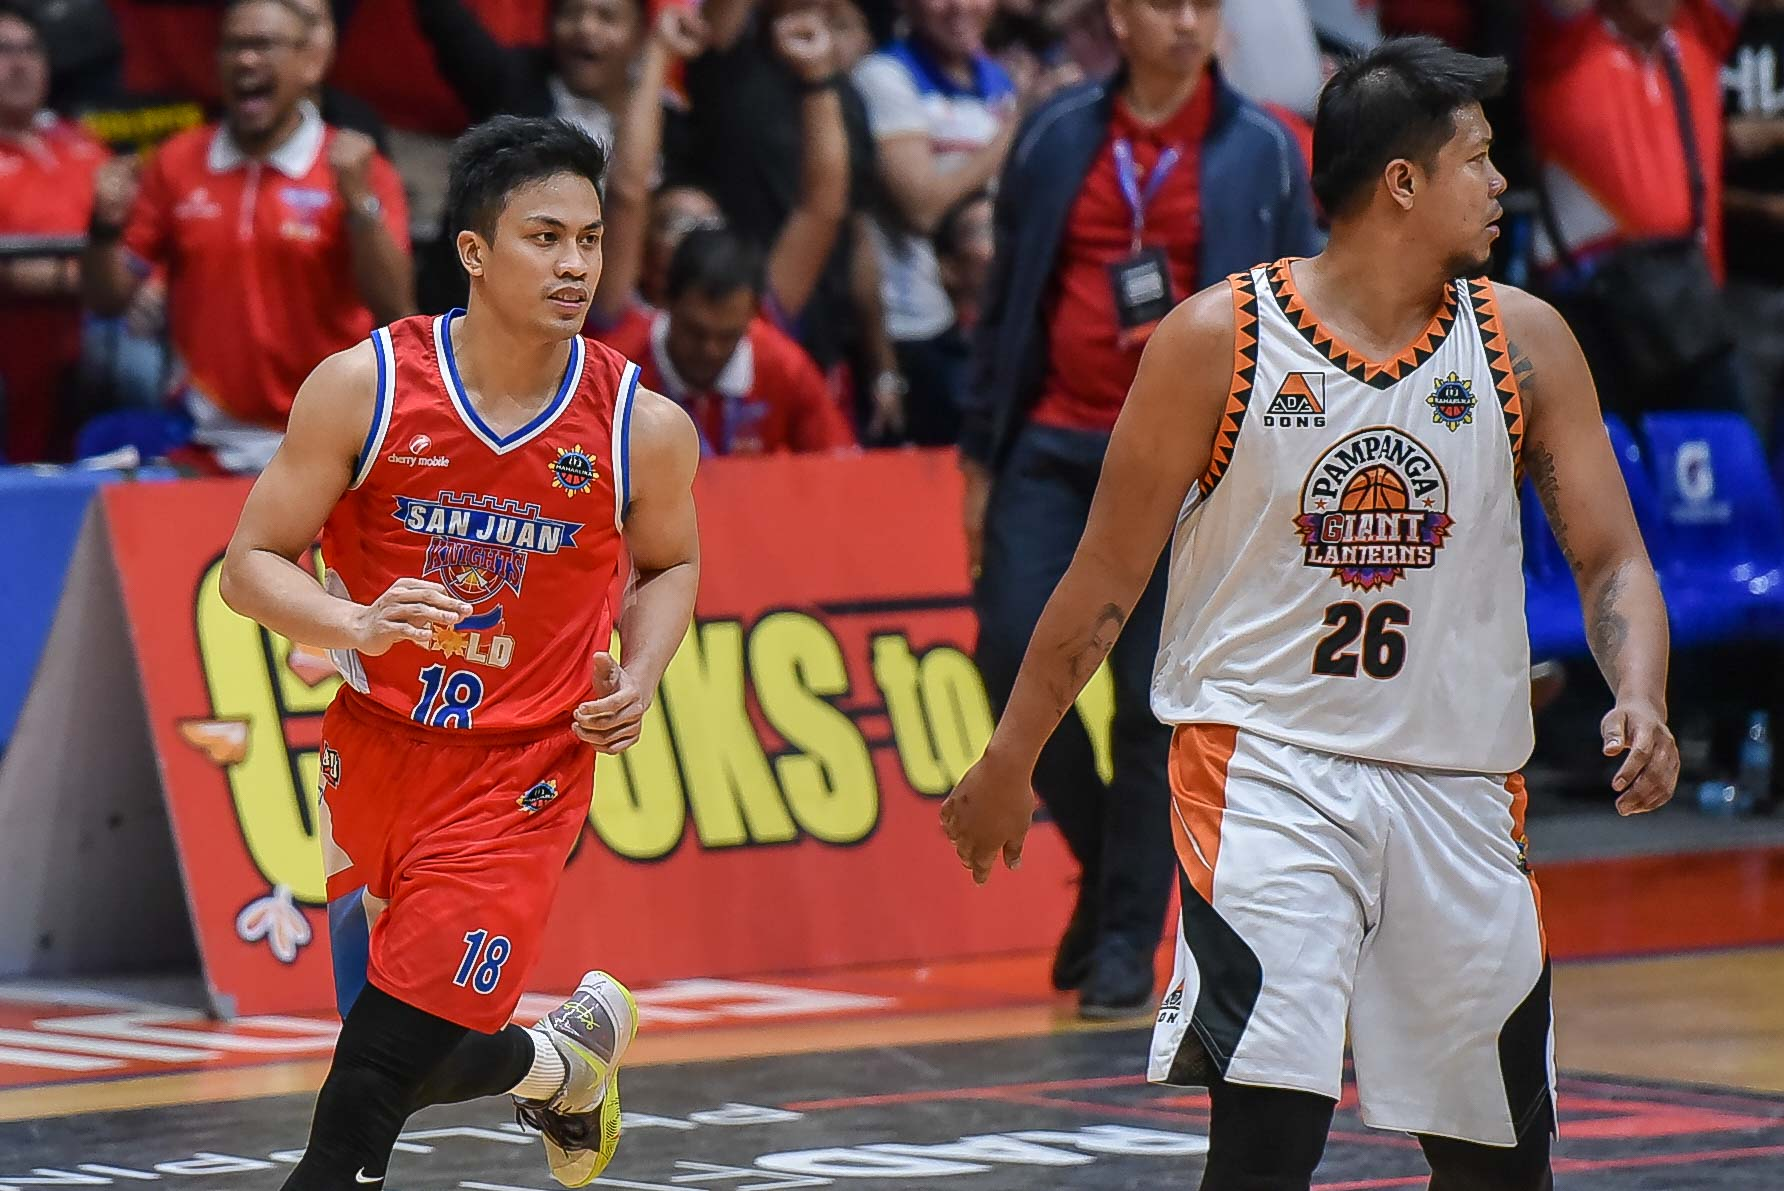 Tiebreaker Times 'Playoffs' Ayonayon has arrived for San Juan Knights Basketball MPBL News  Randy Alcantara Mike Ayonayon Go for Gold-San Juan Knights 2019-20 MPBL Lakan Cup